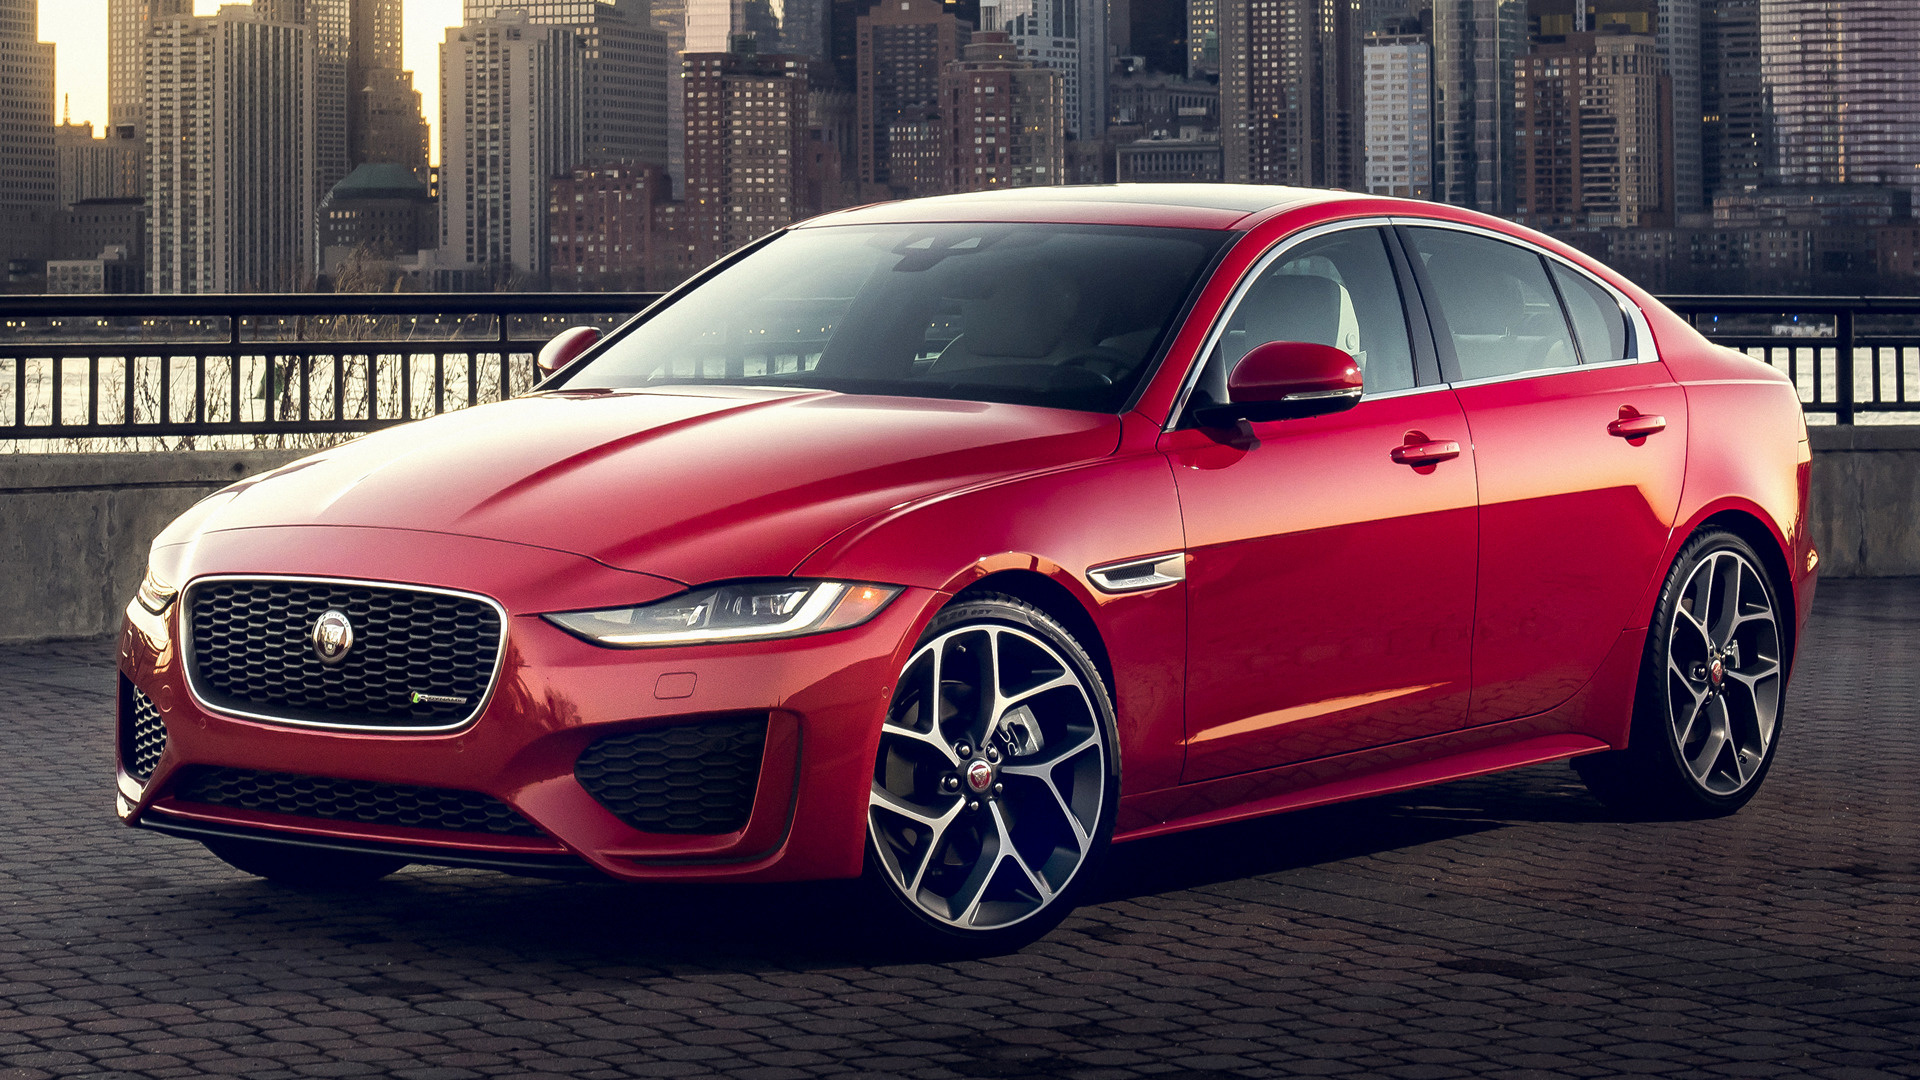 Jaguar F Pace also Volkswagen Passat Variant Ig further New Jaguar Xe Sedan Front Face furthermore Honda Hr V furthermore Jaguar Xe S X. on 2018 jaguar xe